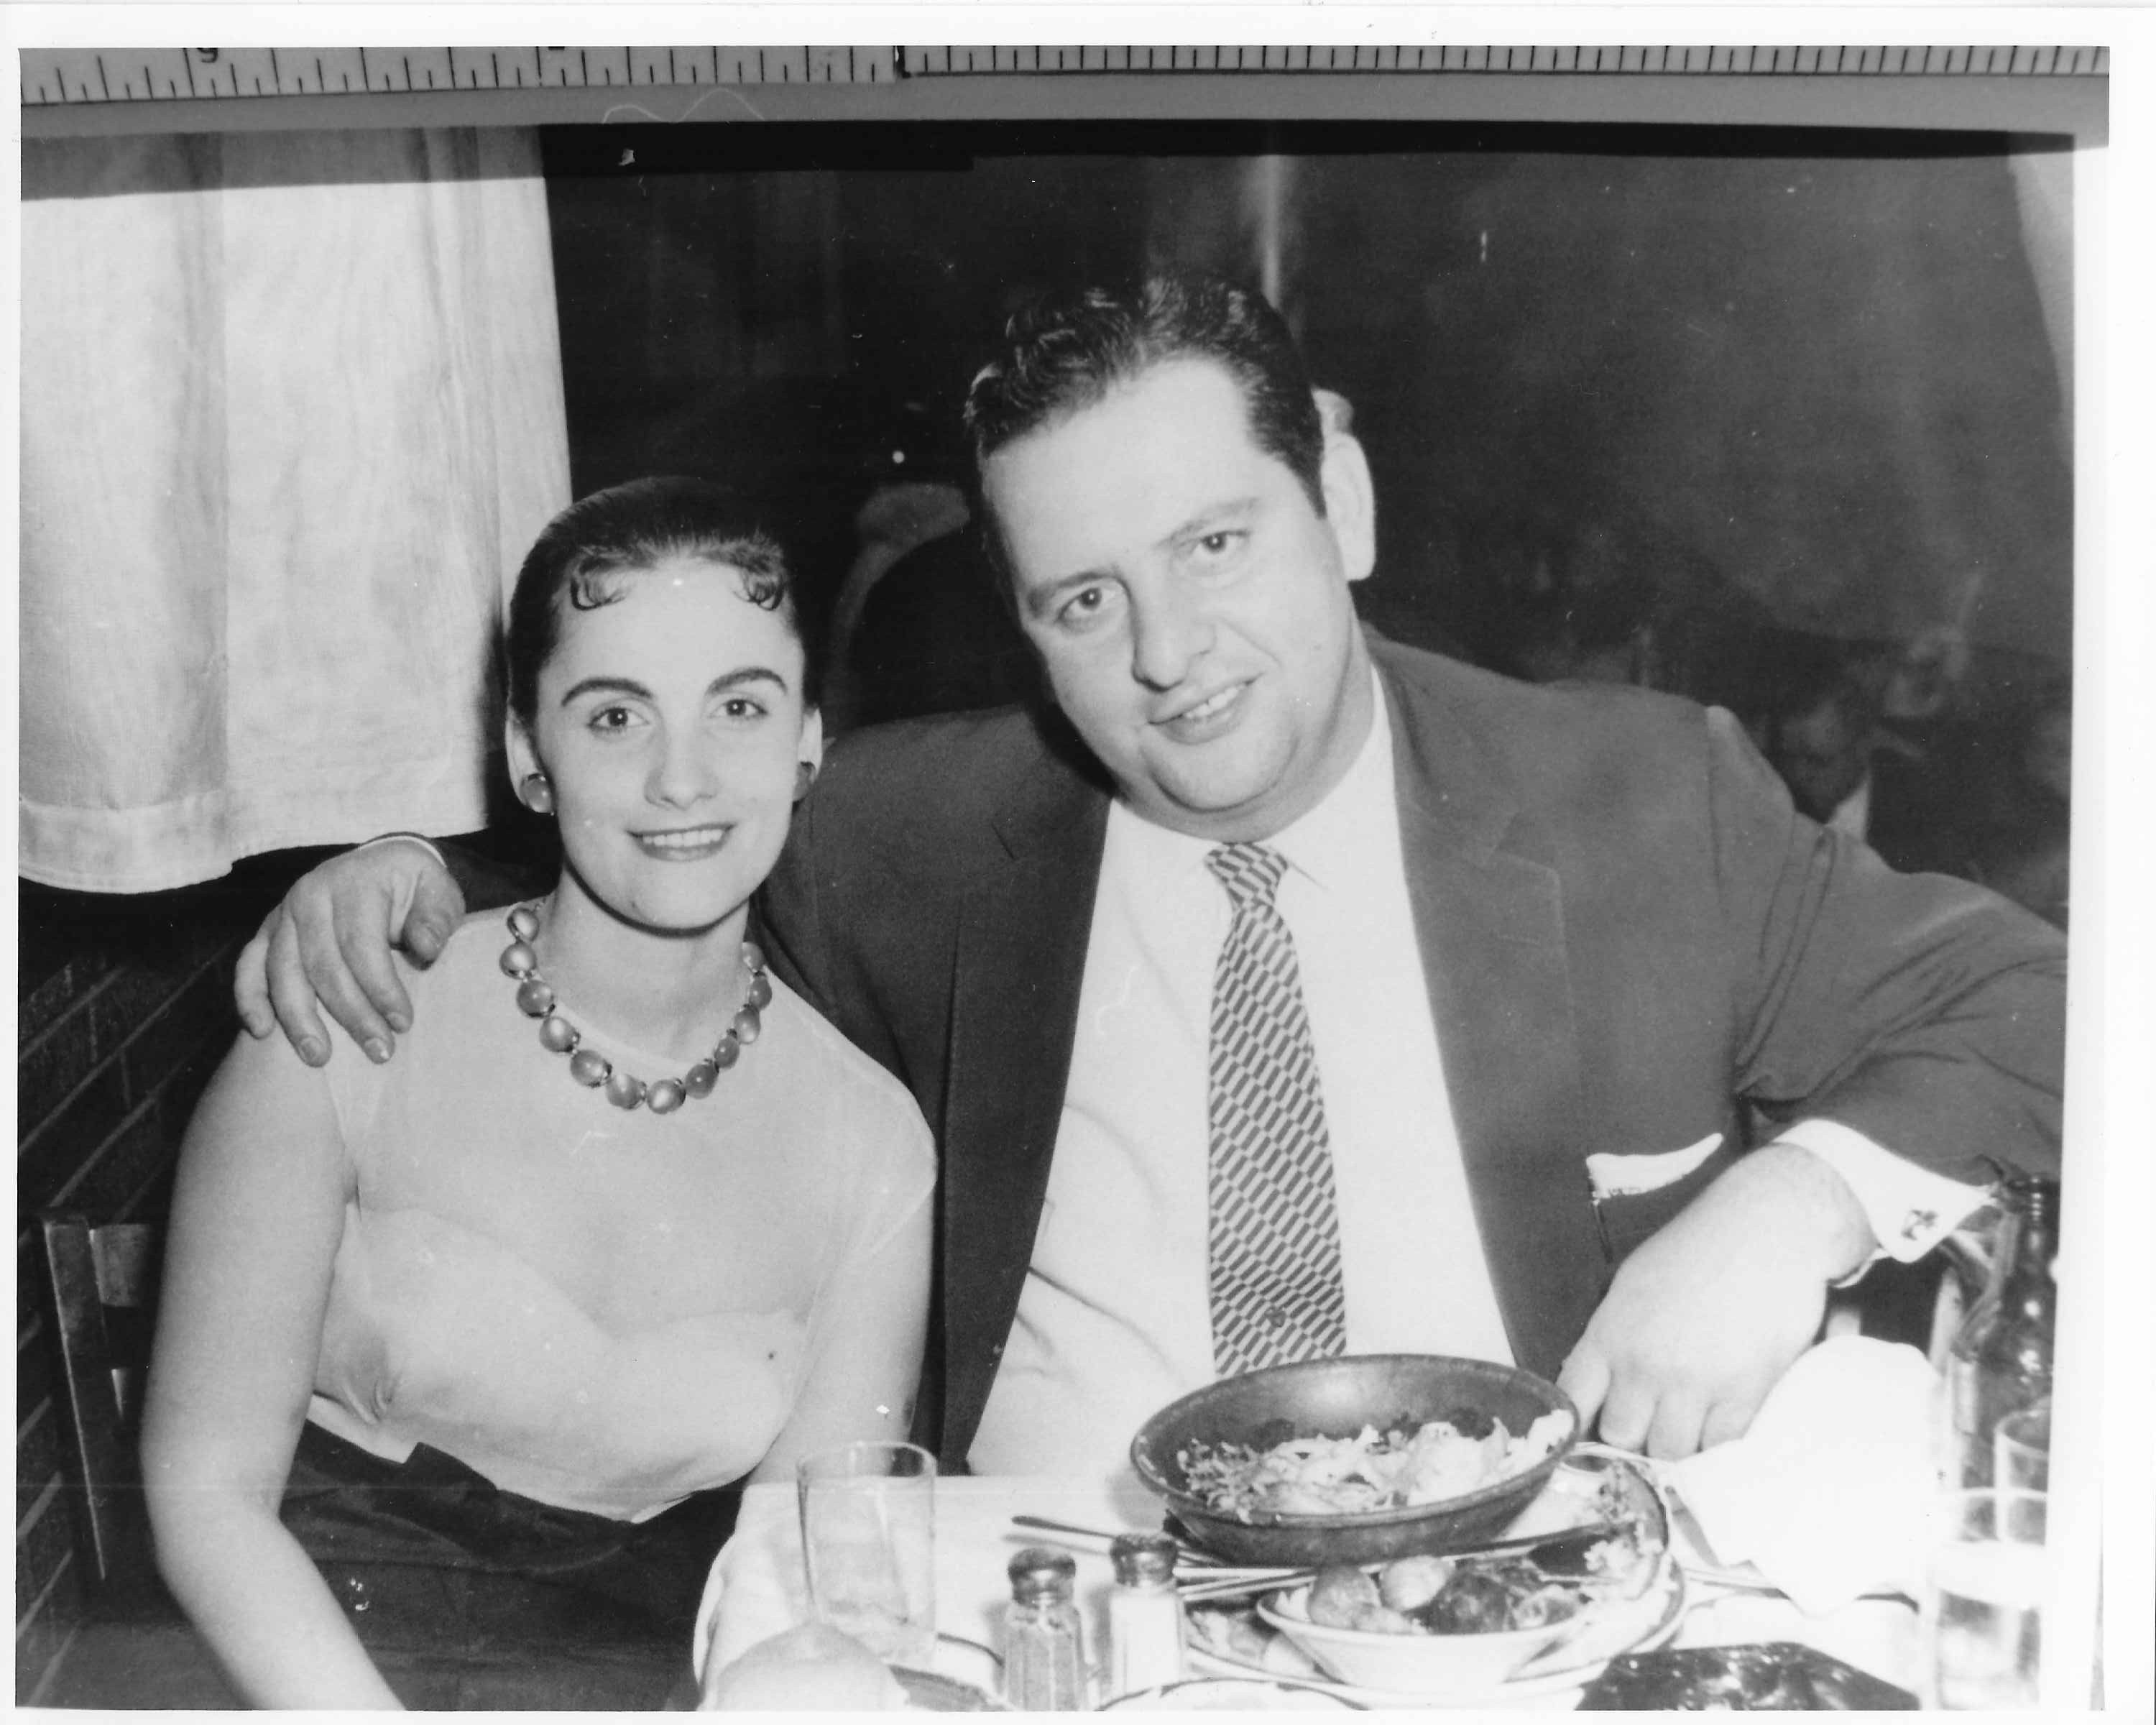 Al and Daisy Monzo in the 60's